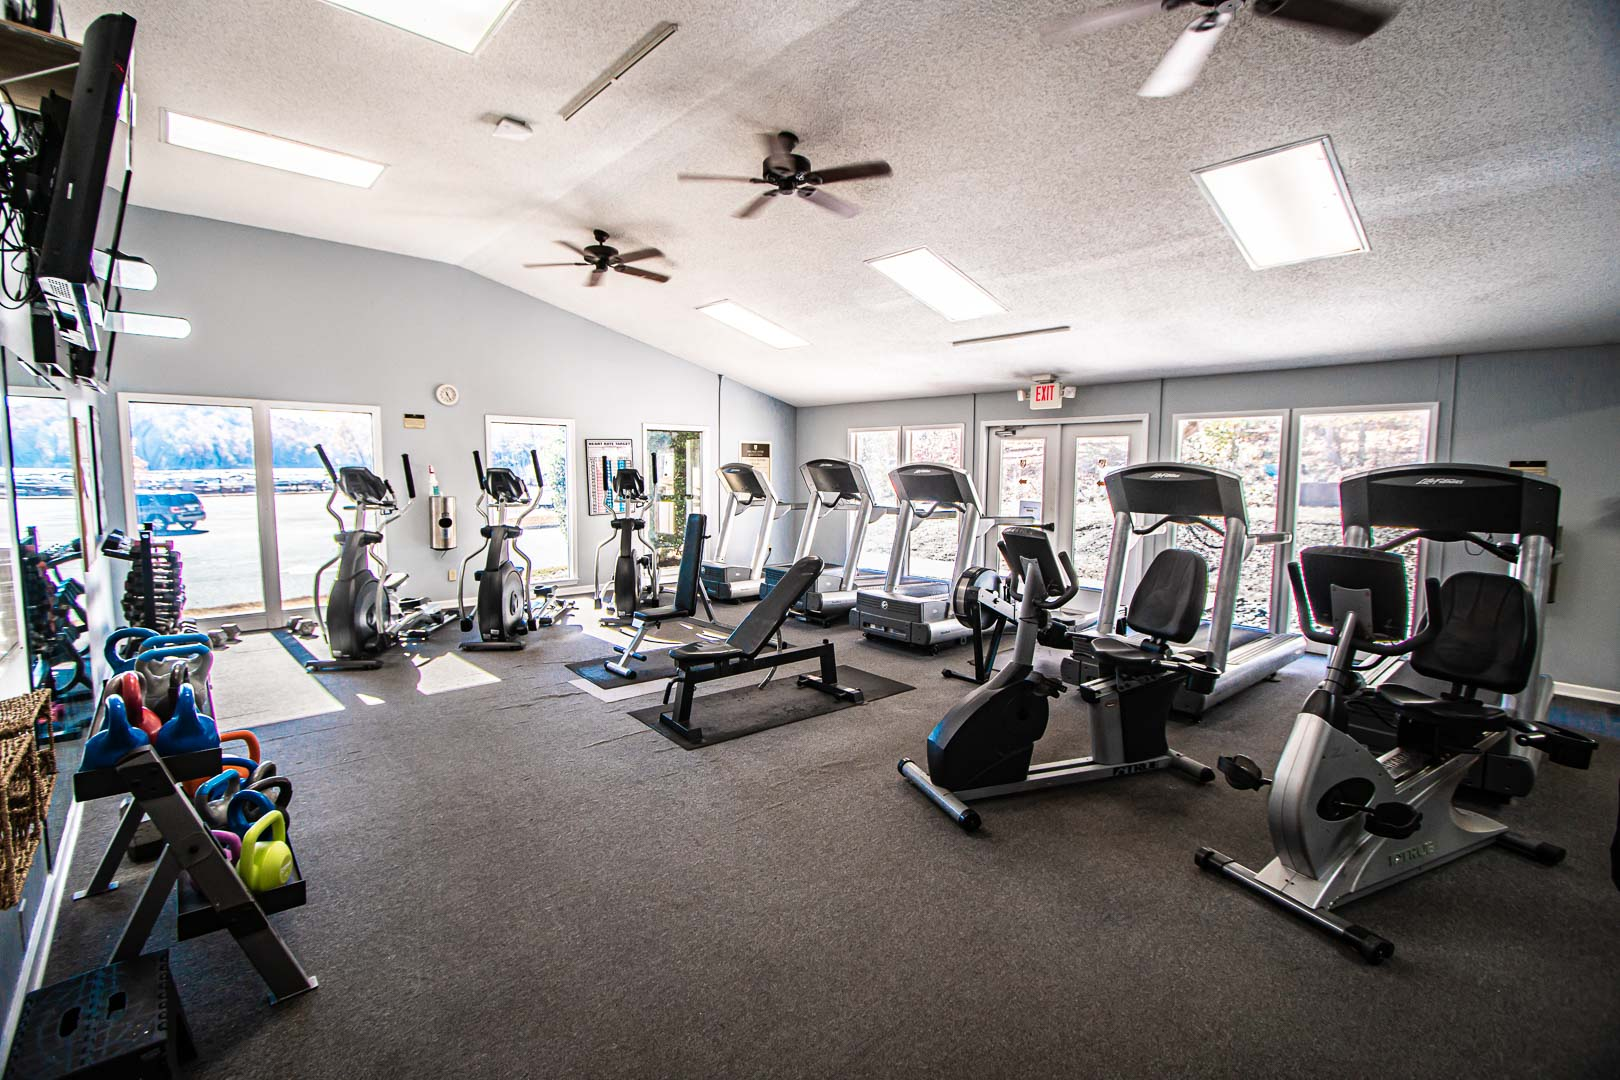 The spacious exercise room at VRI's Fairways of the Mountains in North Carolina.